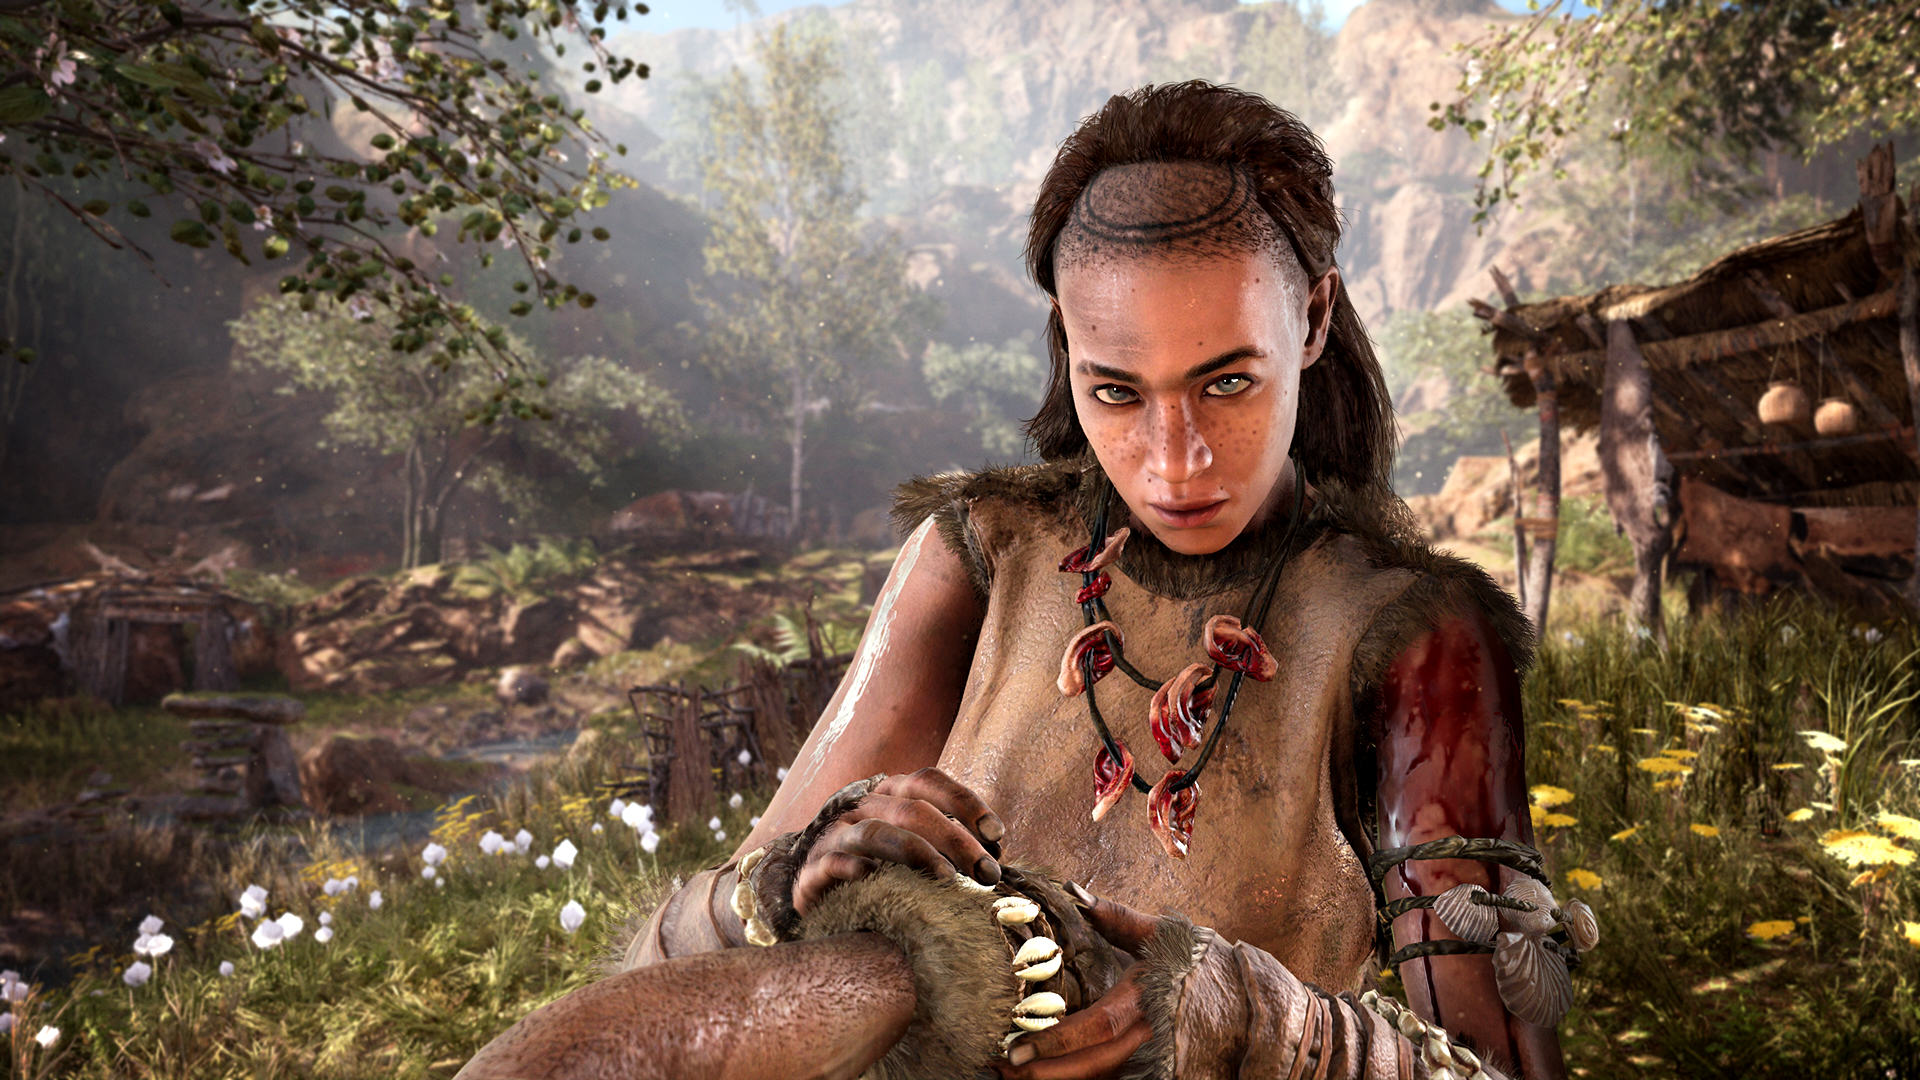 FCP 02 Gatherer Screenshots PREVIEW PR 160126 6pm CET 1453716678 An Exclusive Look At Far Cry Primal Ahead Of Release Day